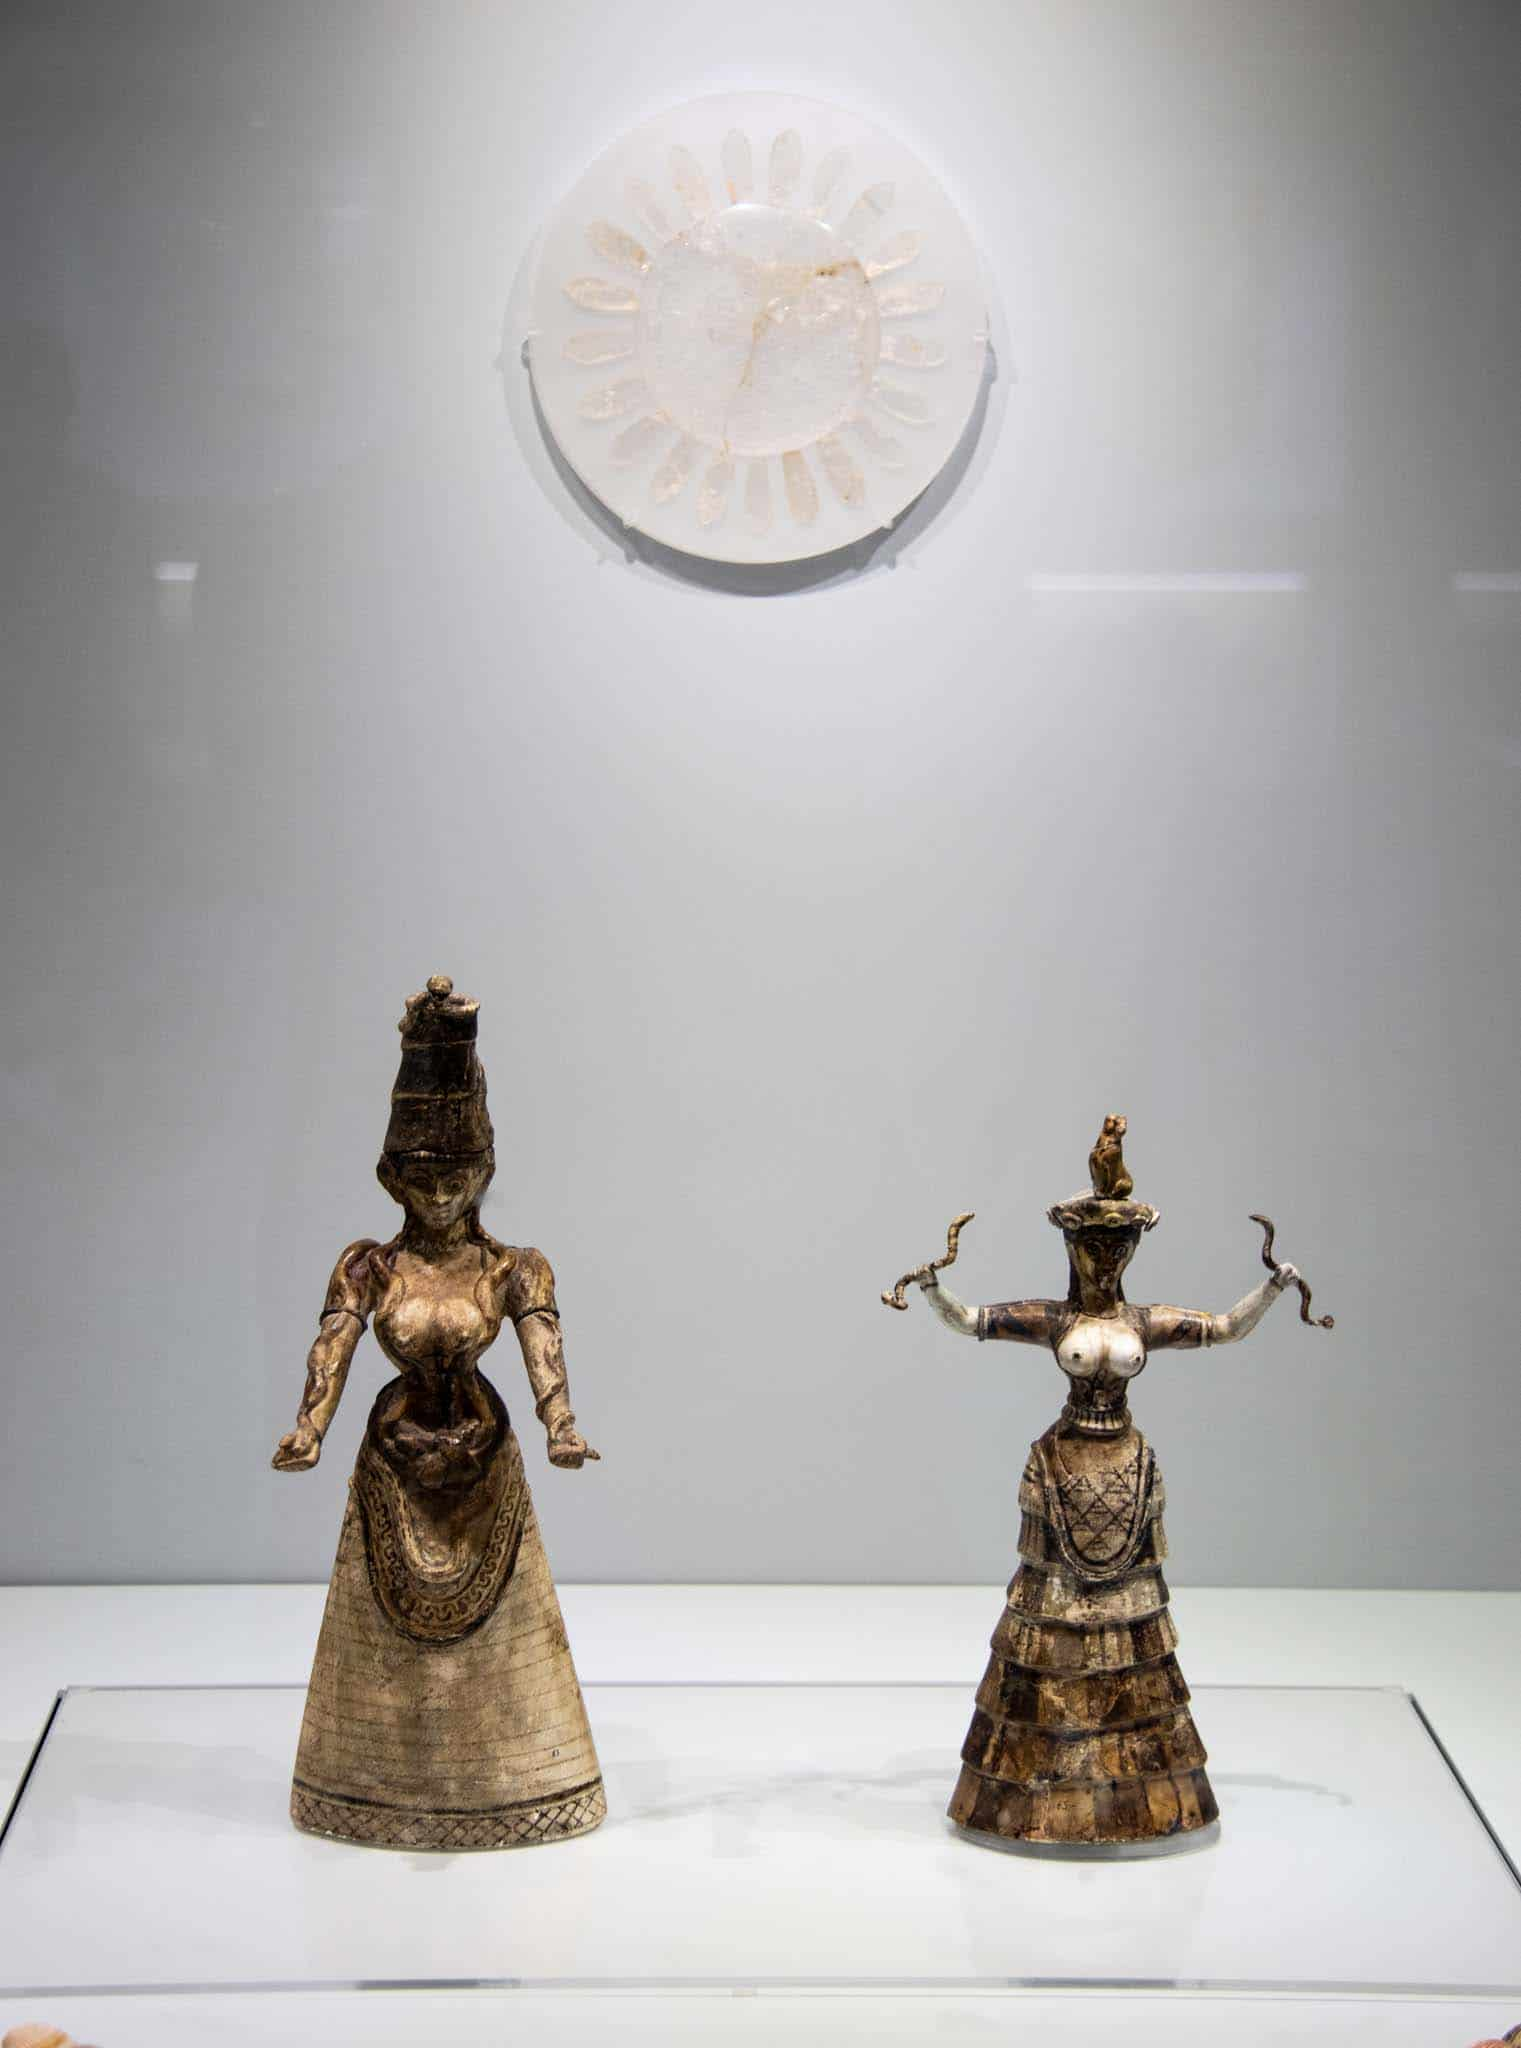 Minoan Snake Goddess and Priestess in the Heraklion Archaeological Museum. The snake goddess has snakes wrapped around her arms. The priestess holds a snake in each hand and has a Monkey on her head. Yes Louis - there's a monkey on her head!